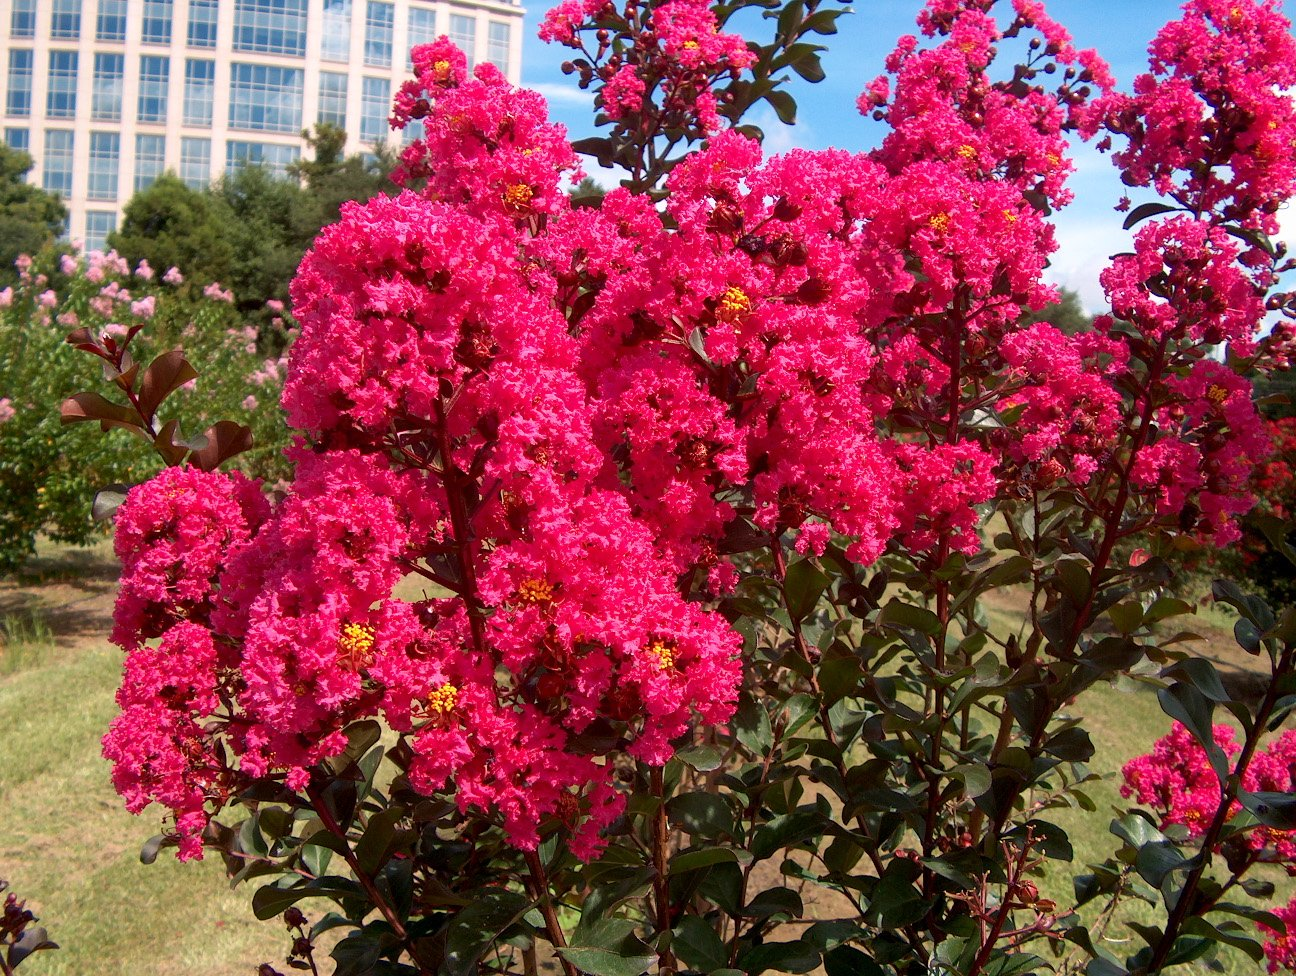 LARGE HOT PINK CRAPE MYRTLE, 2-4ft Tall When Shipped, Matures 8ft, 1 Tree, Bright HOT PINK Flowers, (Shipped Well Rooted in Pots with Soil)